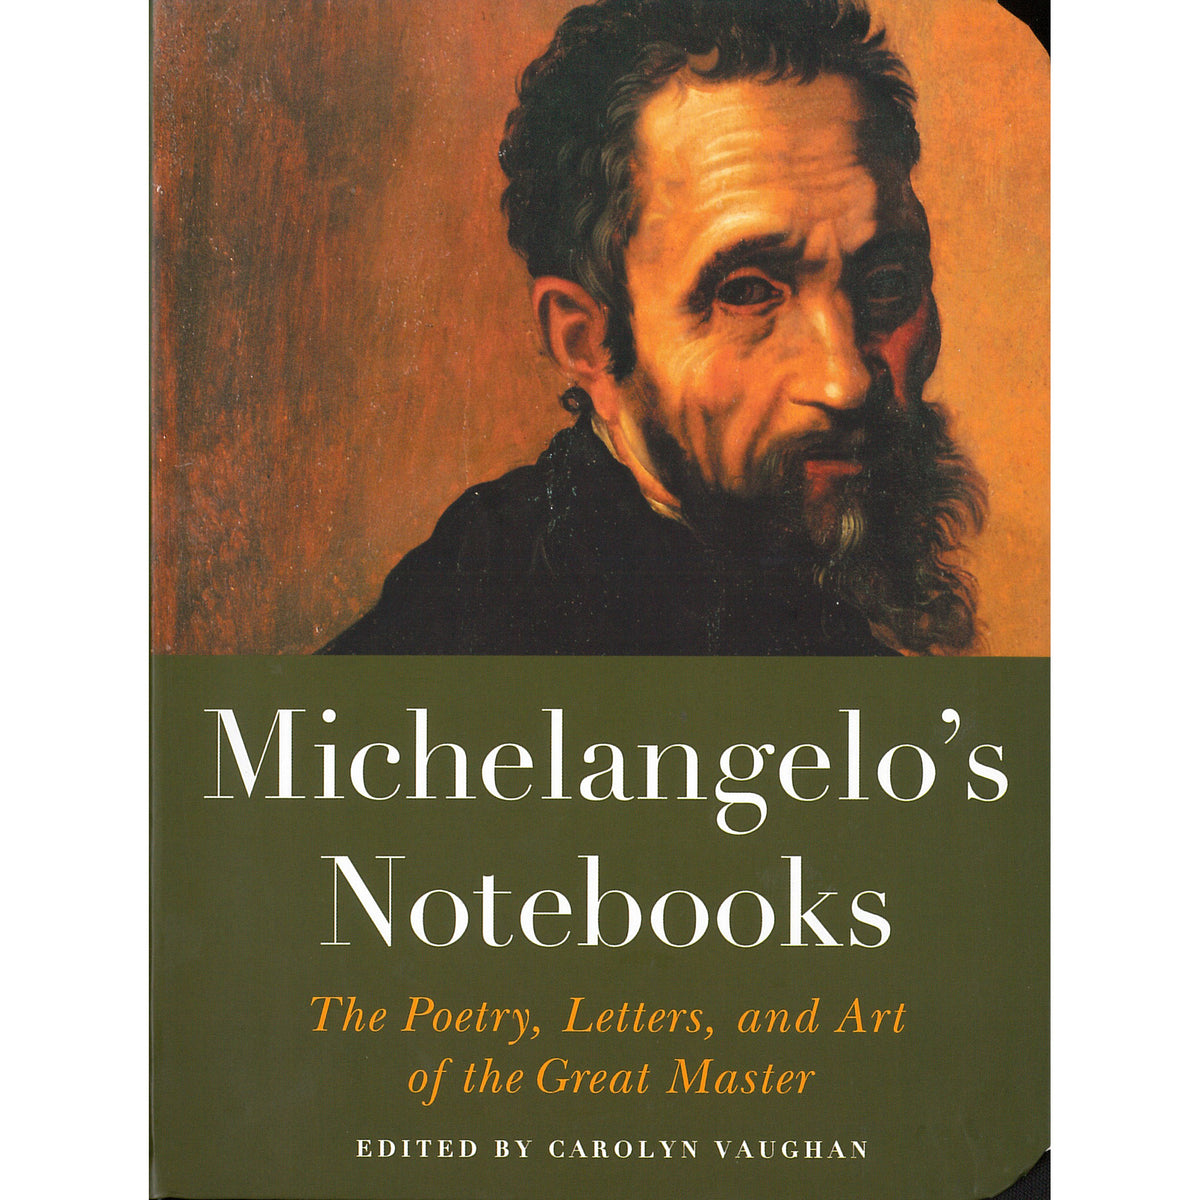 Michelangelo's Notebooks: The Poetry Letters and Art of the Great Master